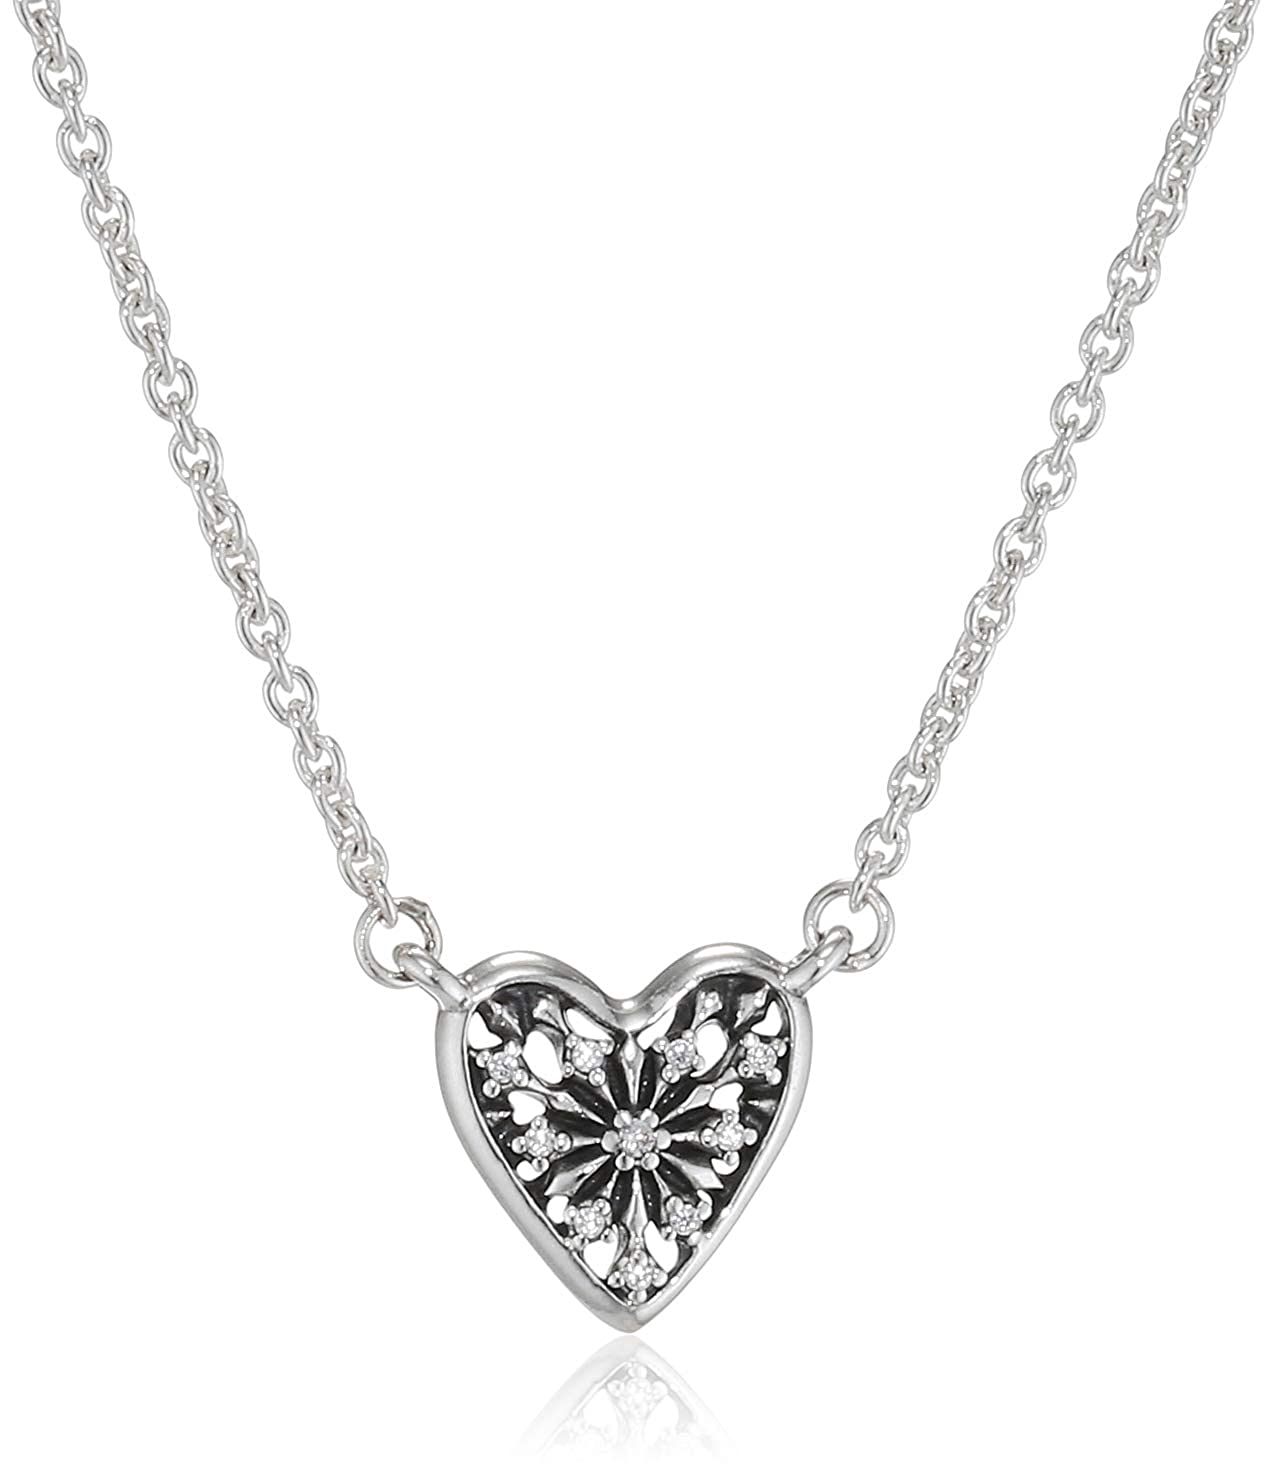 8f003a56f851c Pandora Sterling Silver Heart of Winter Pendant & Necklace 396370CZ